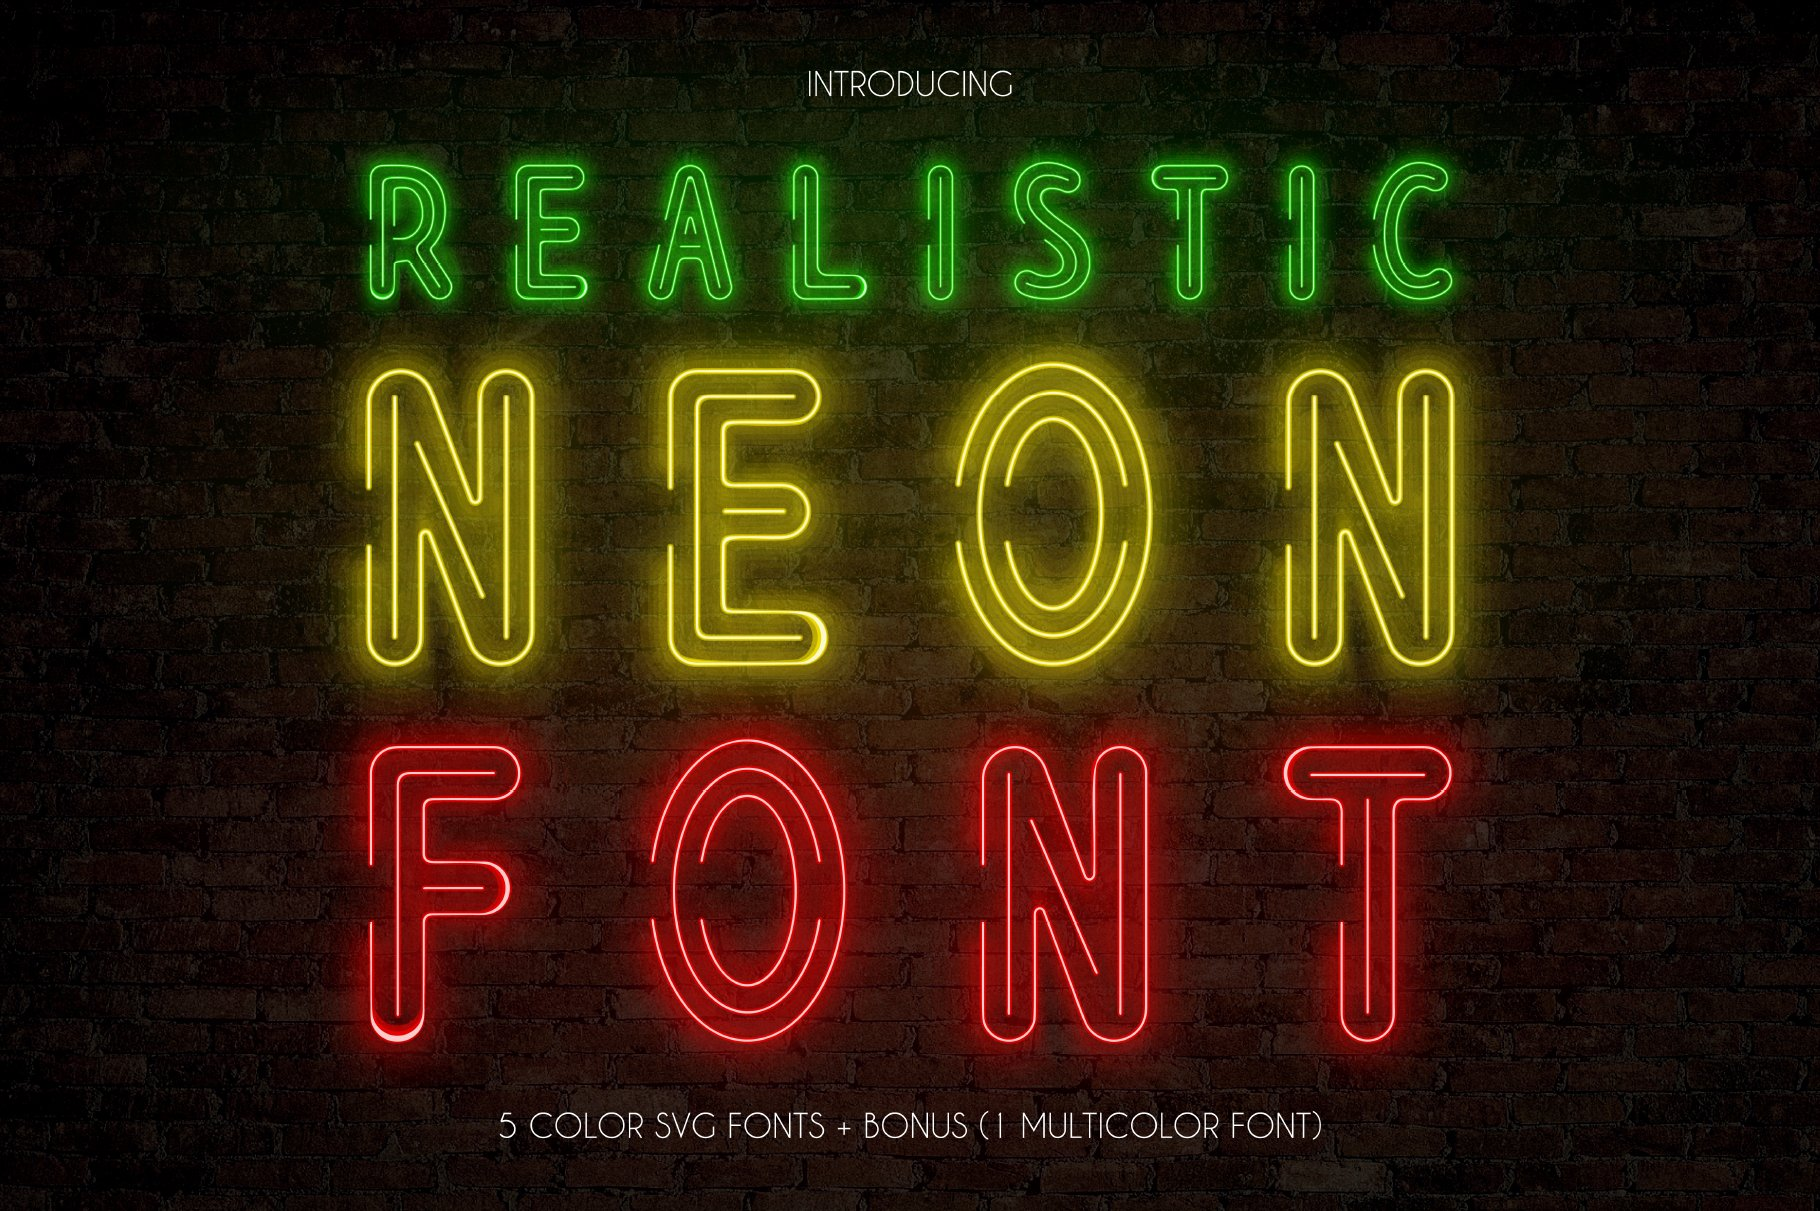 Download Realistic Neon SVG Font Pack | Stunning Display Fonts ...